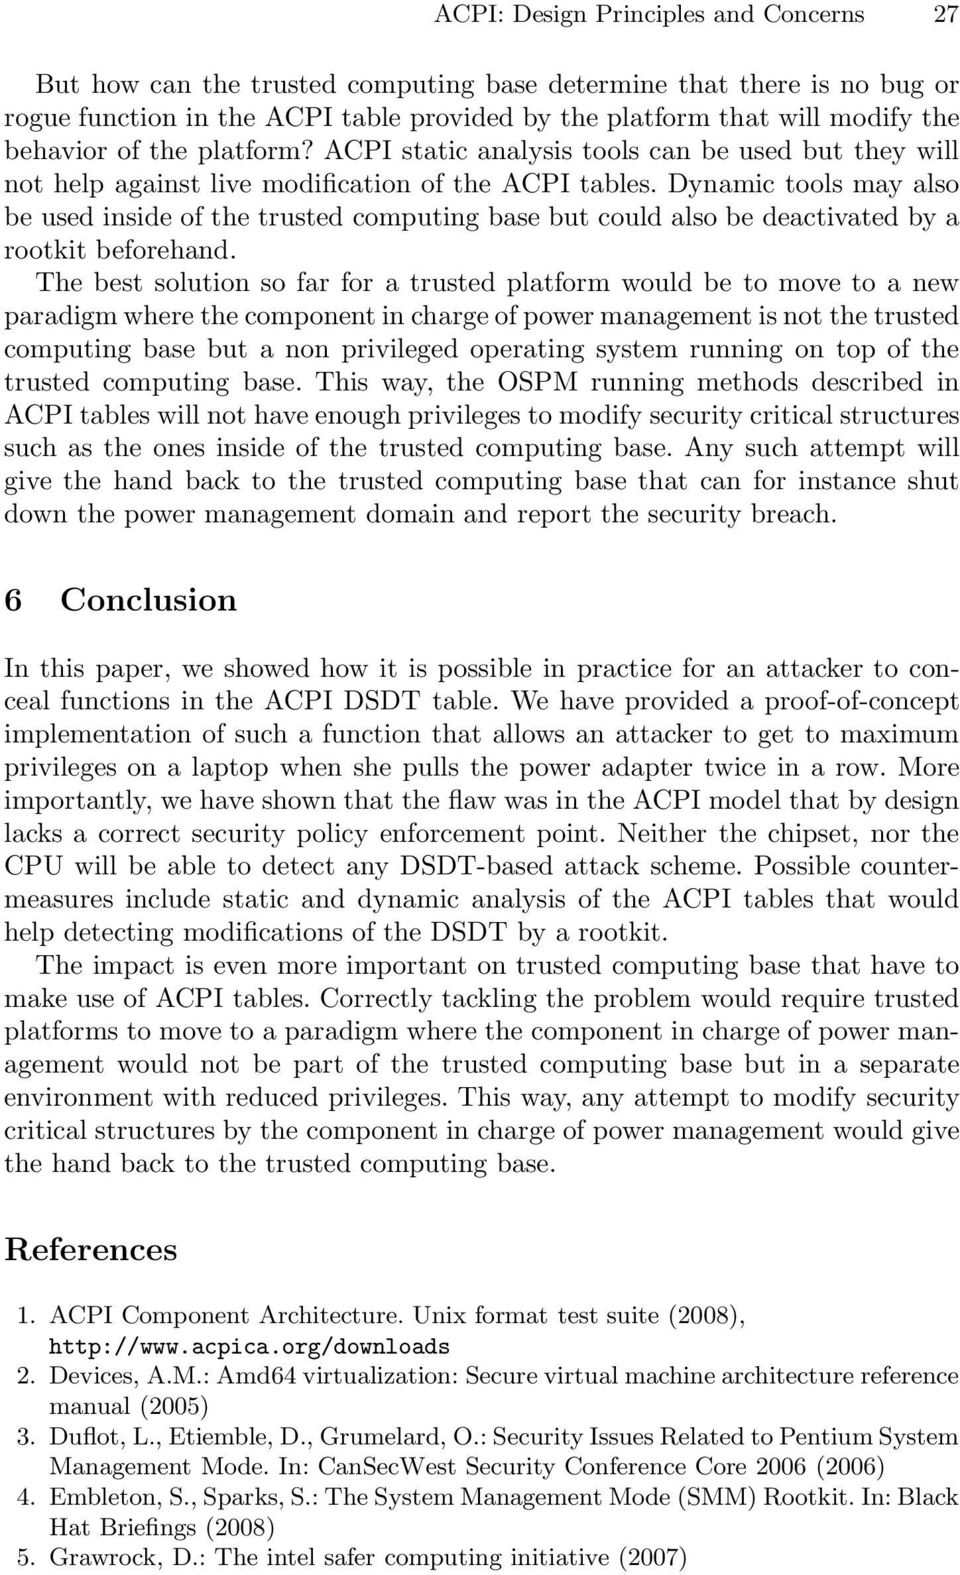 ACPI: Design Principles and Concerns - PDF